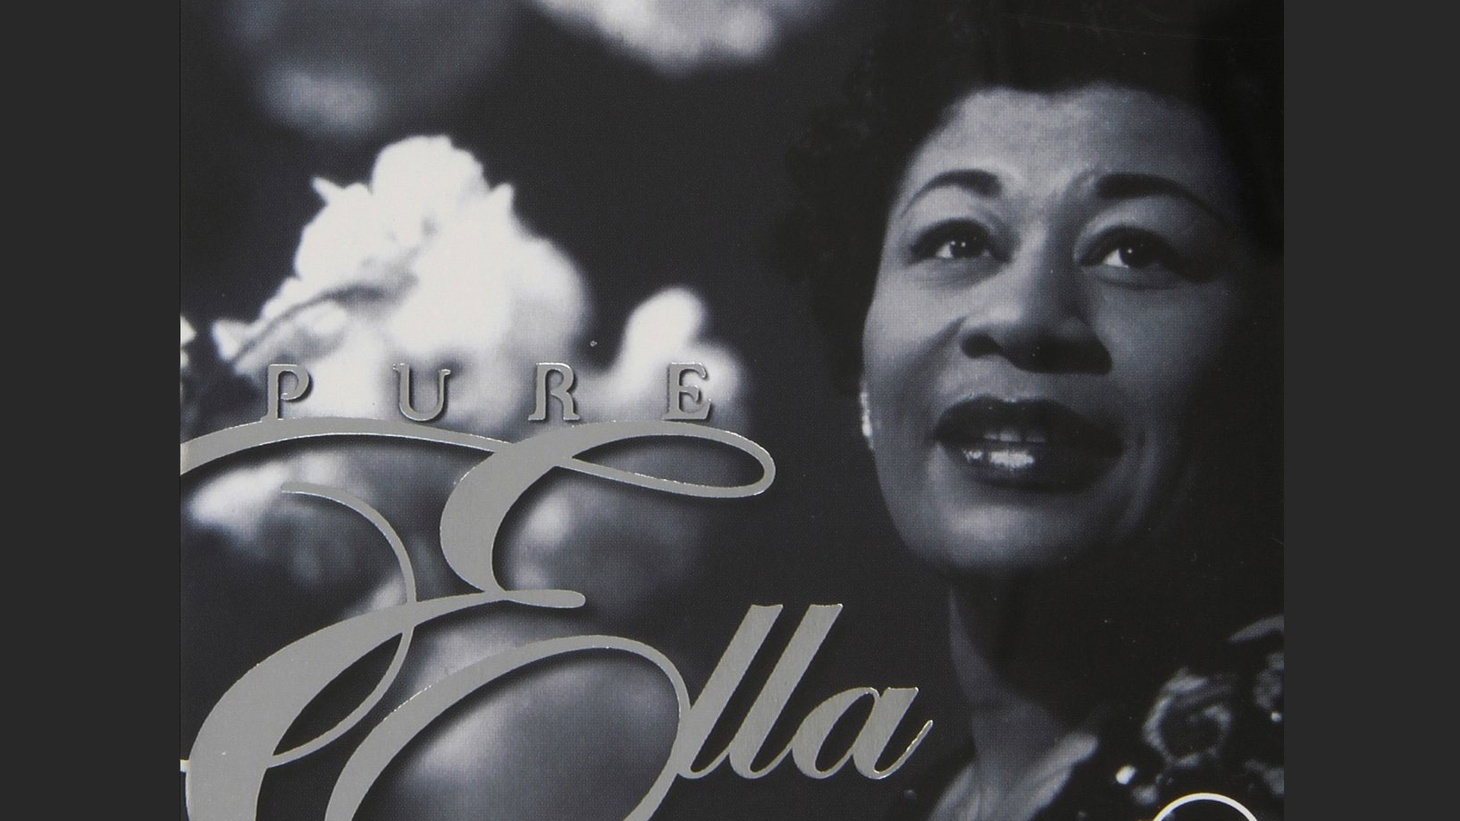 Strictly Jazz host Bo Leibowitz hosts a royal birthday party for the First Lady of Jazz, Ella Fitzgerald. This show is completely devoted to Ella's marvelous talent and the span of her career.